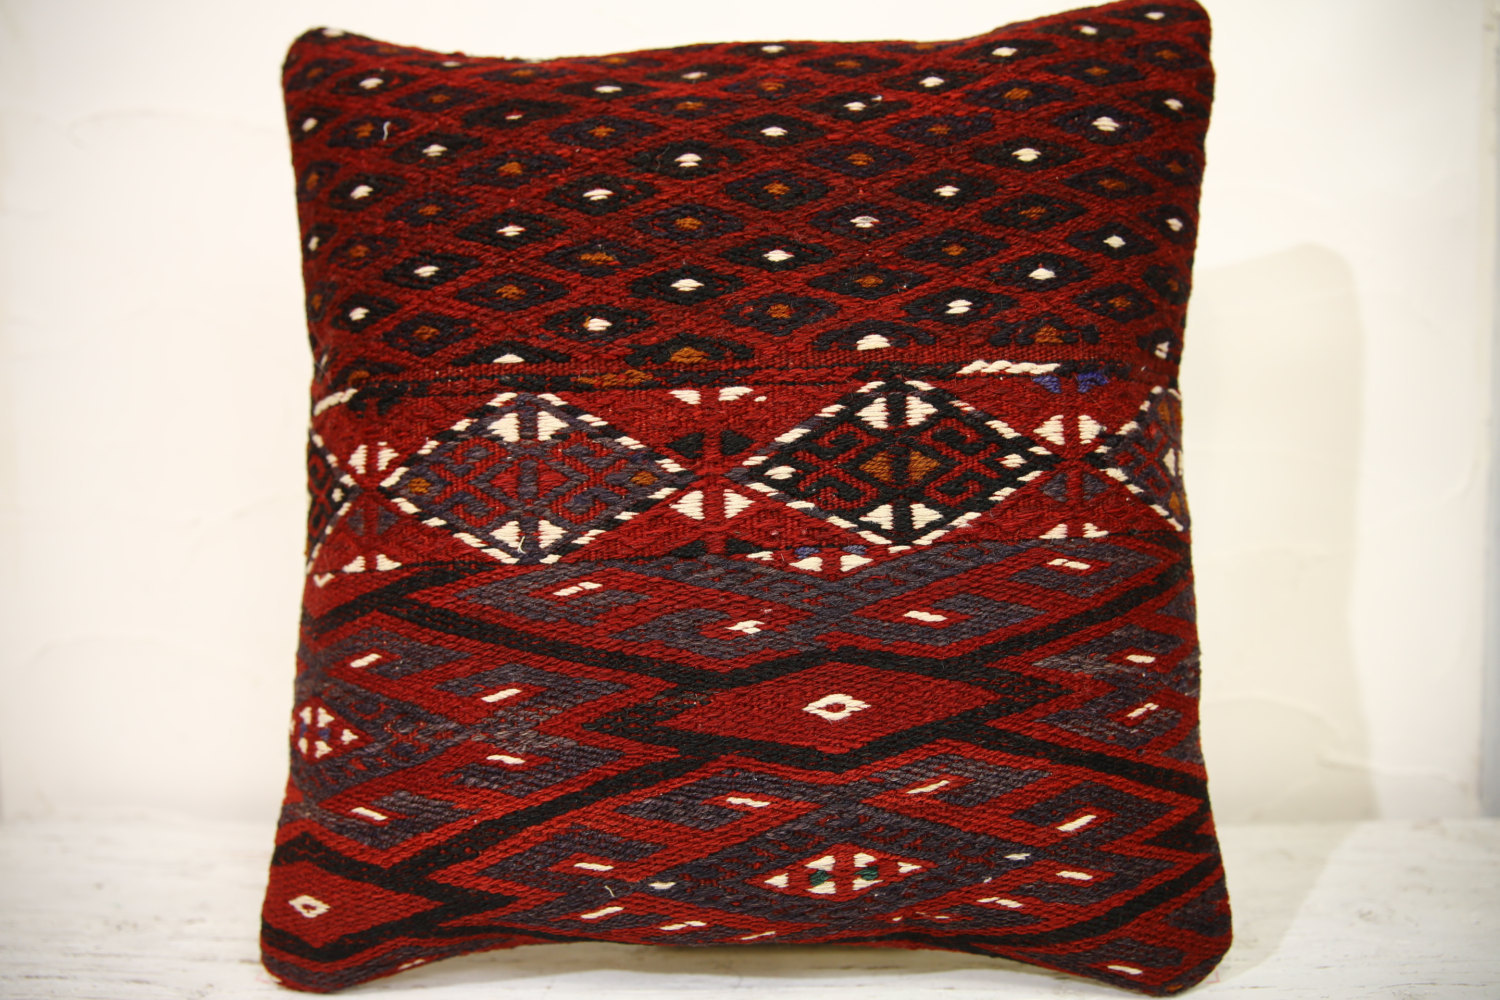 Kilim Pillows | 16x16 | turkish pillows | 967 | Accent Pillows,Decorative Pillow